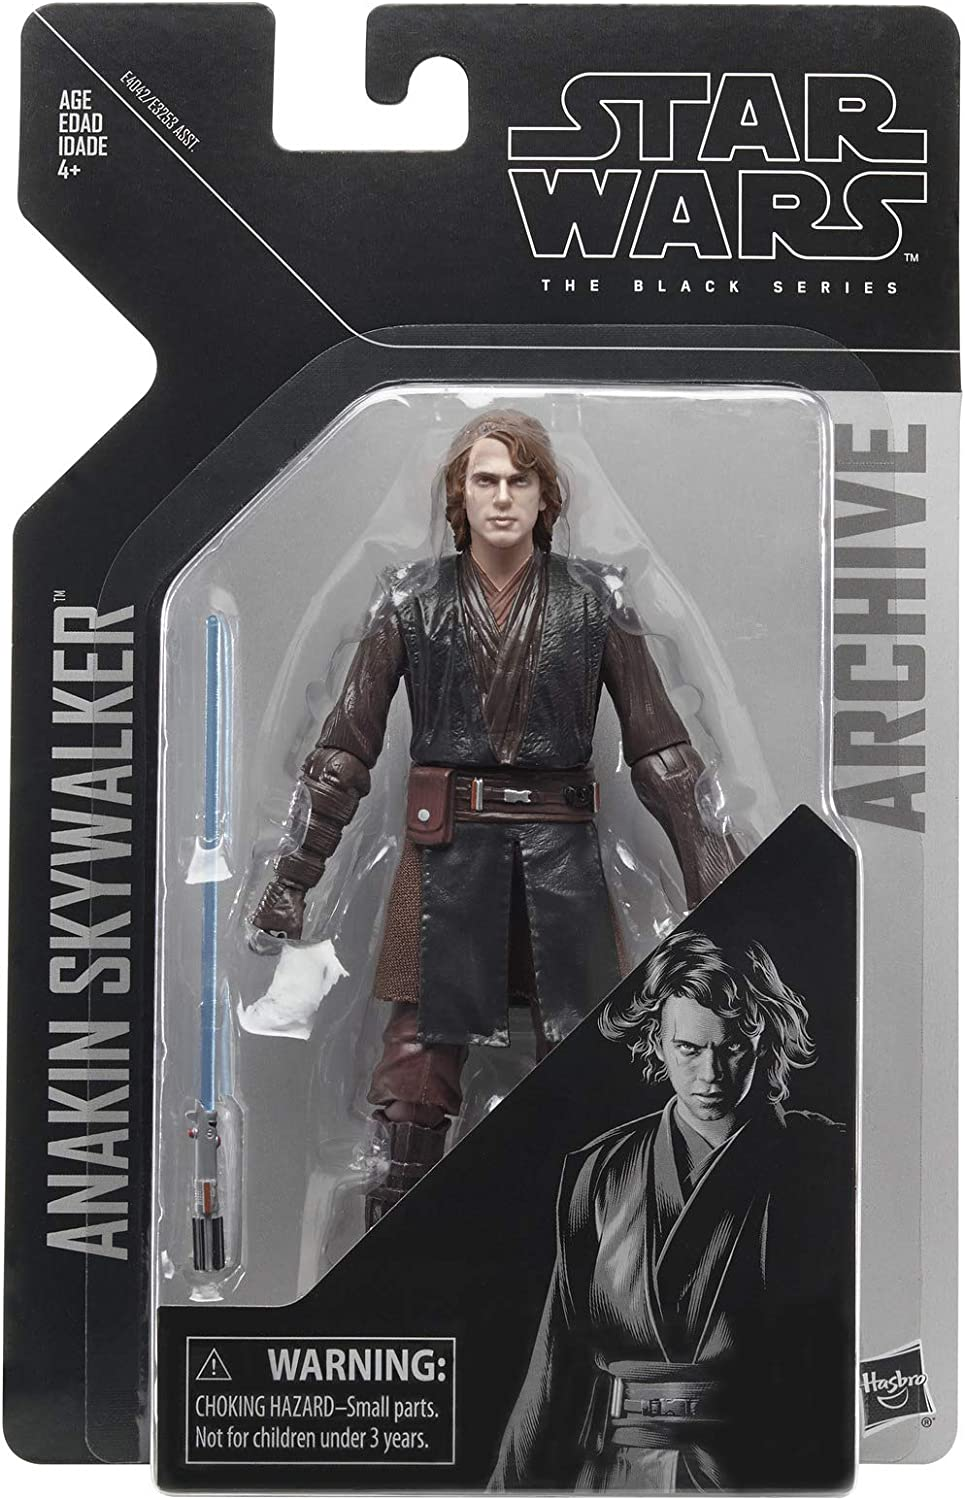 Star Wars Anakin Skywalker to Darth Vader Action Figure Hasbro Australia